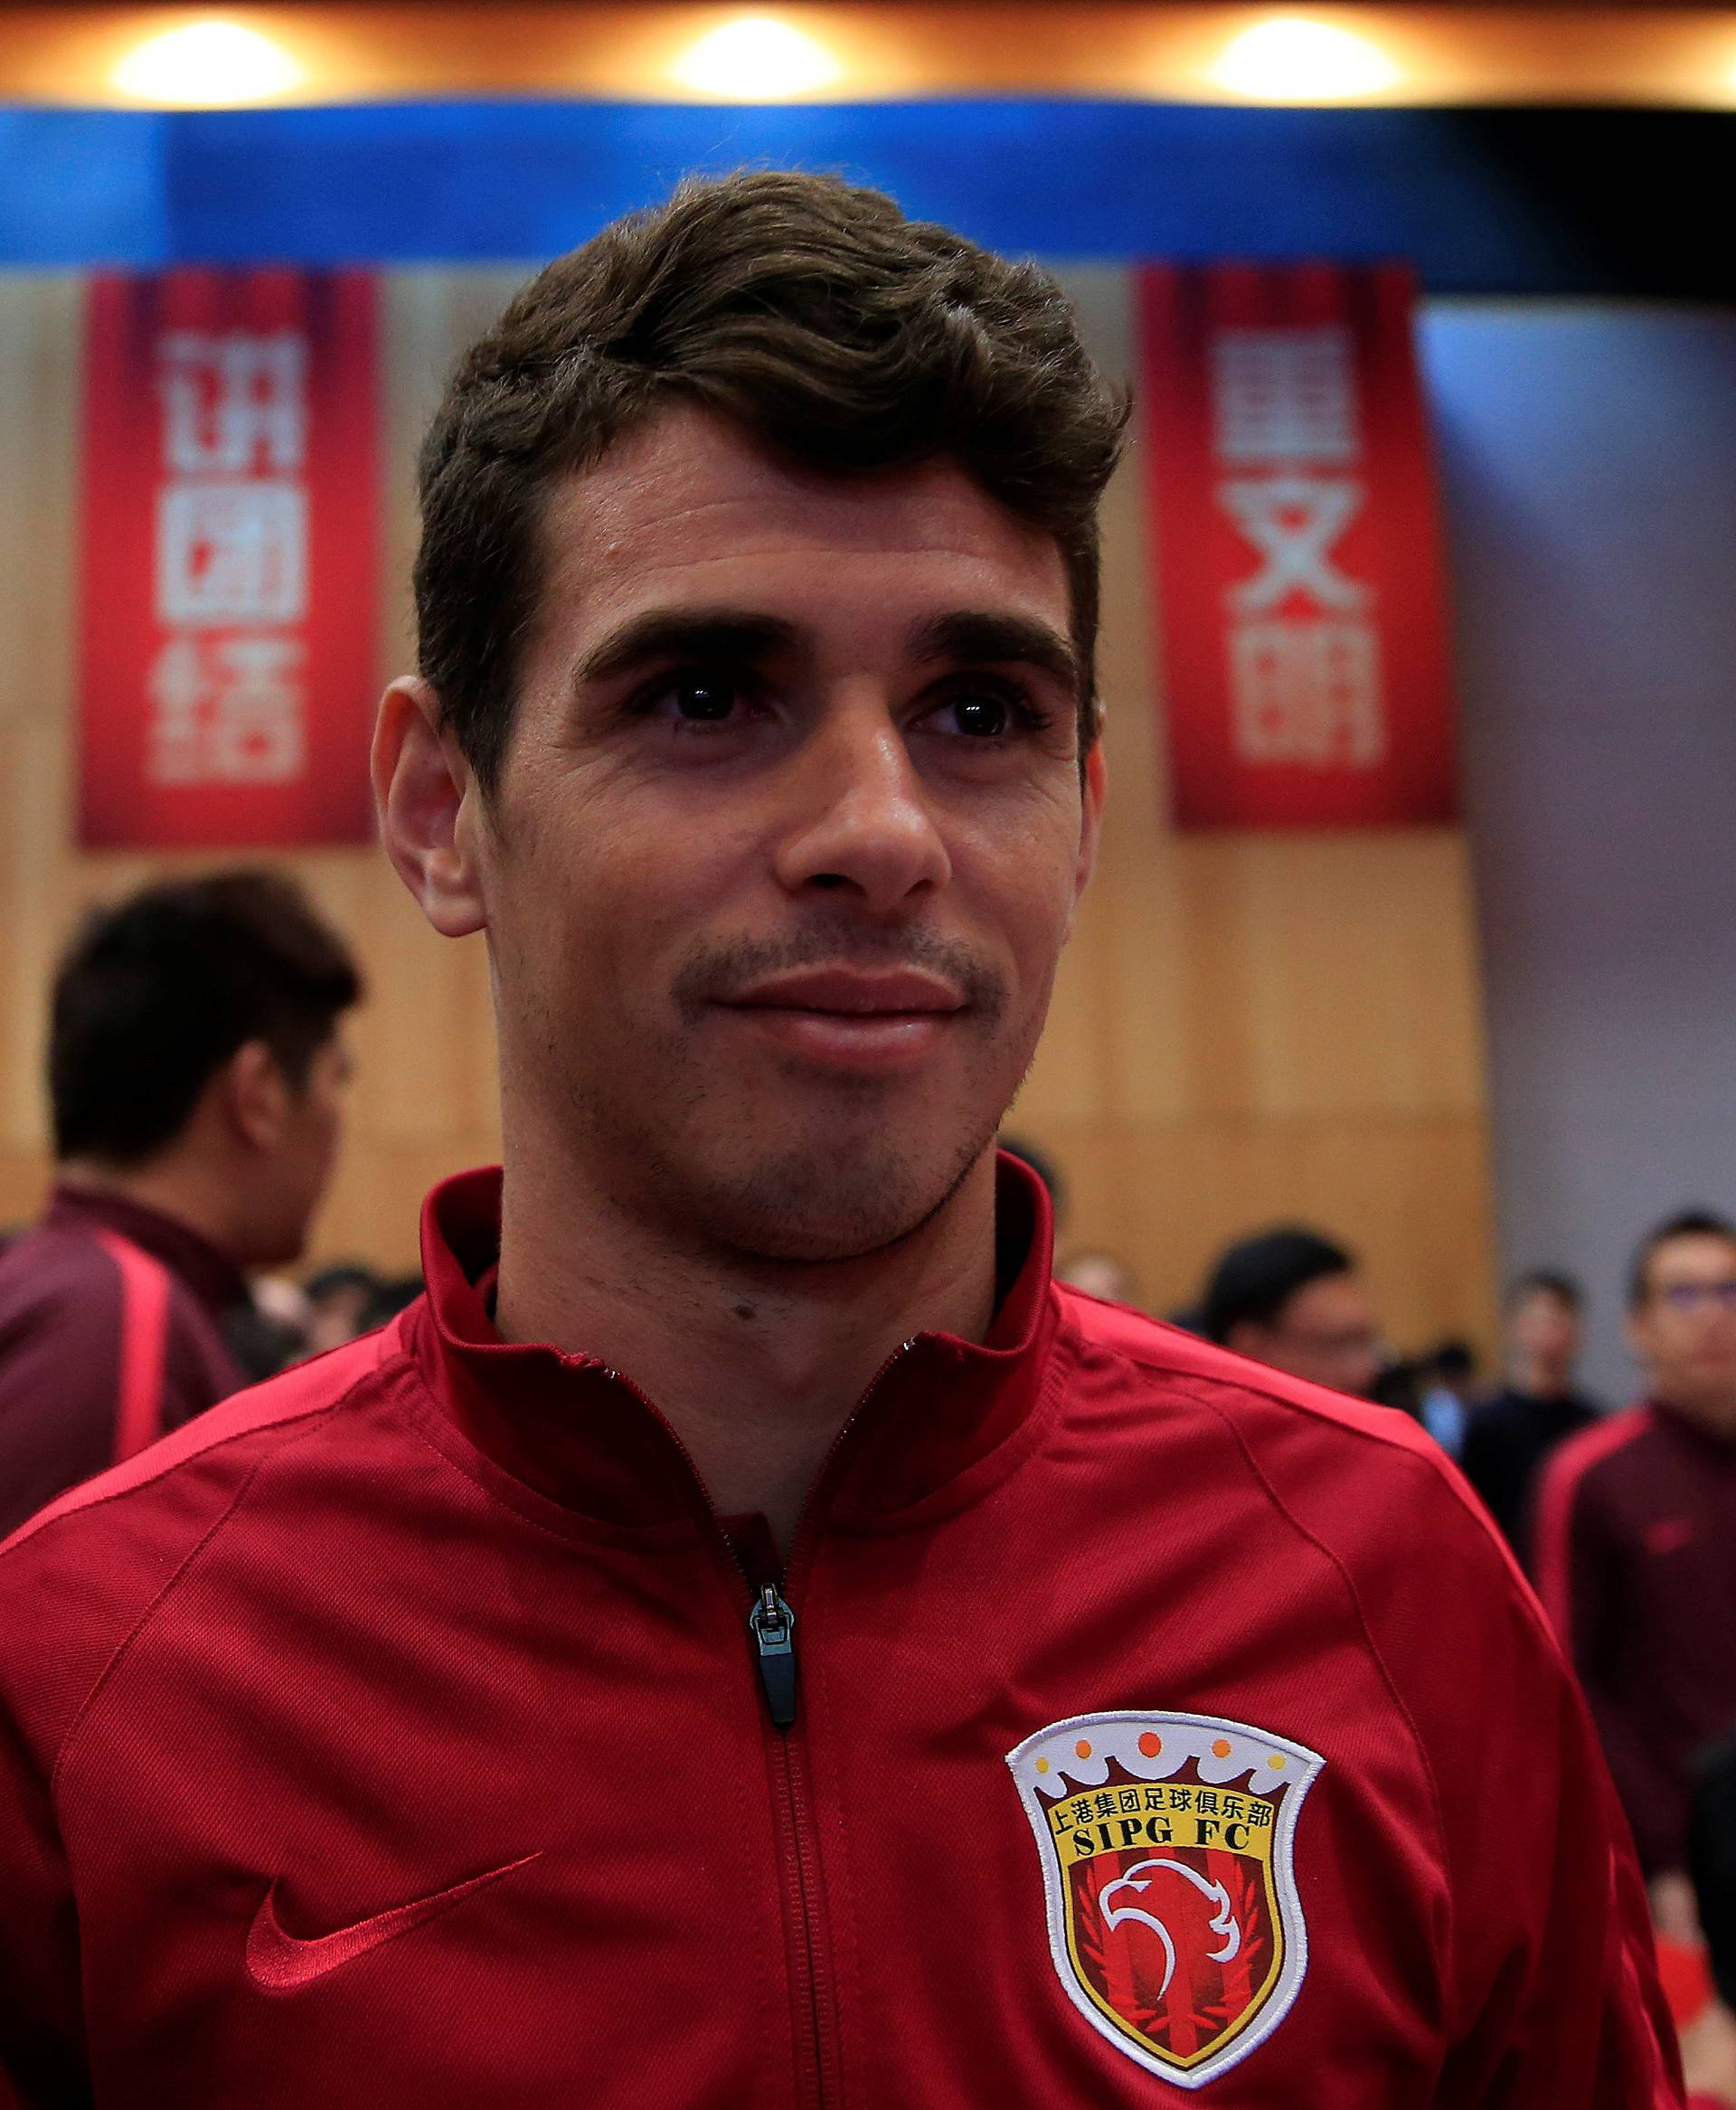 Brazilian soccer player Oscar attends the 2017 SIPG Football Club's season mobilization of the Chinese Super League, in Shanghai